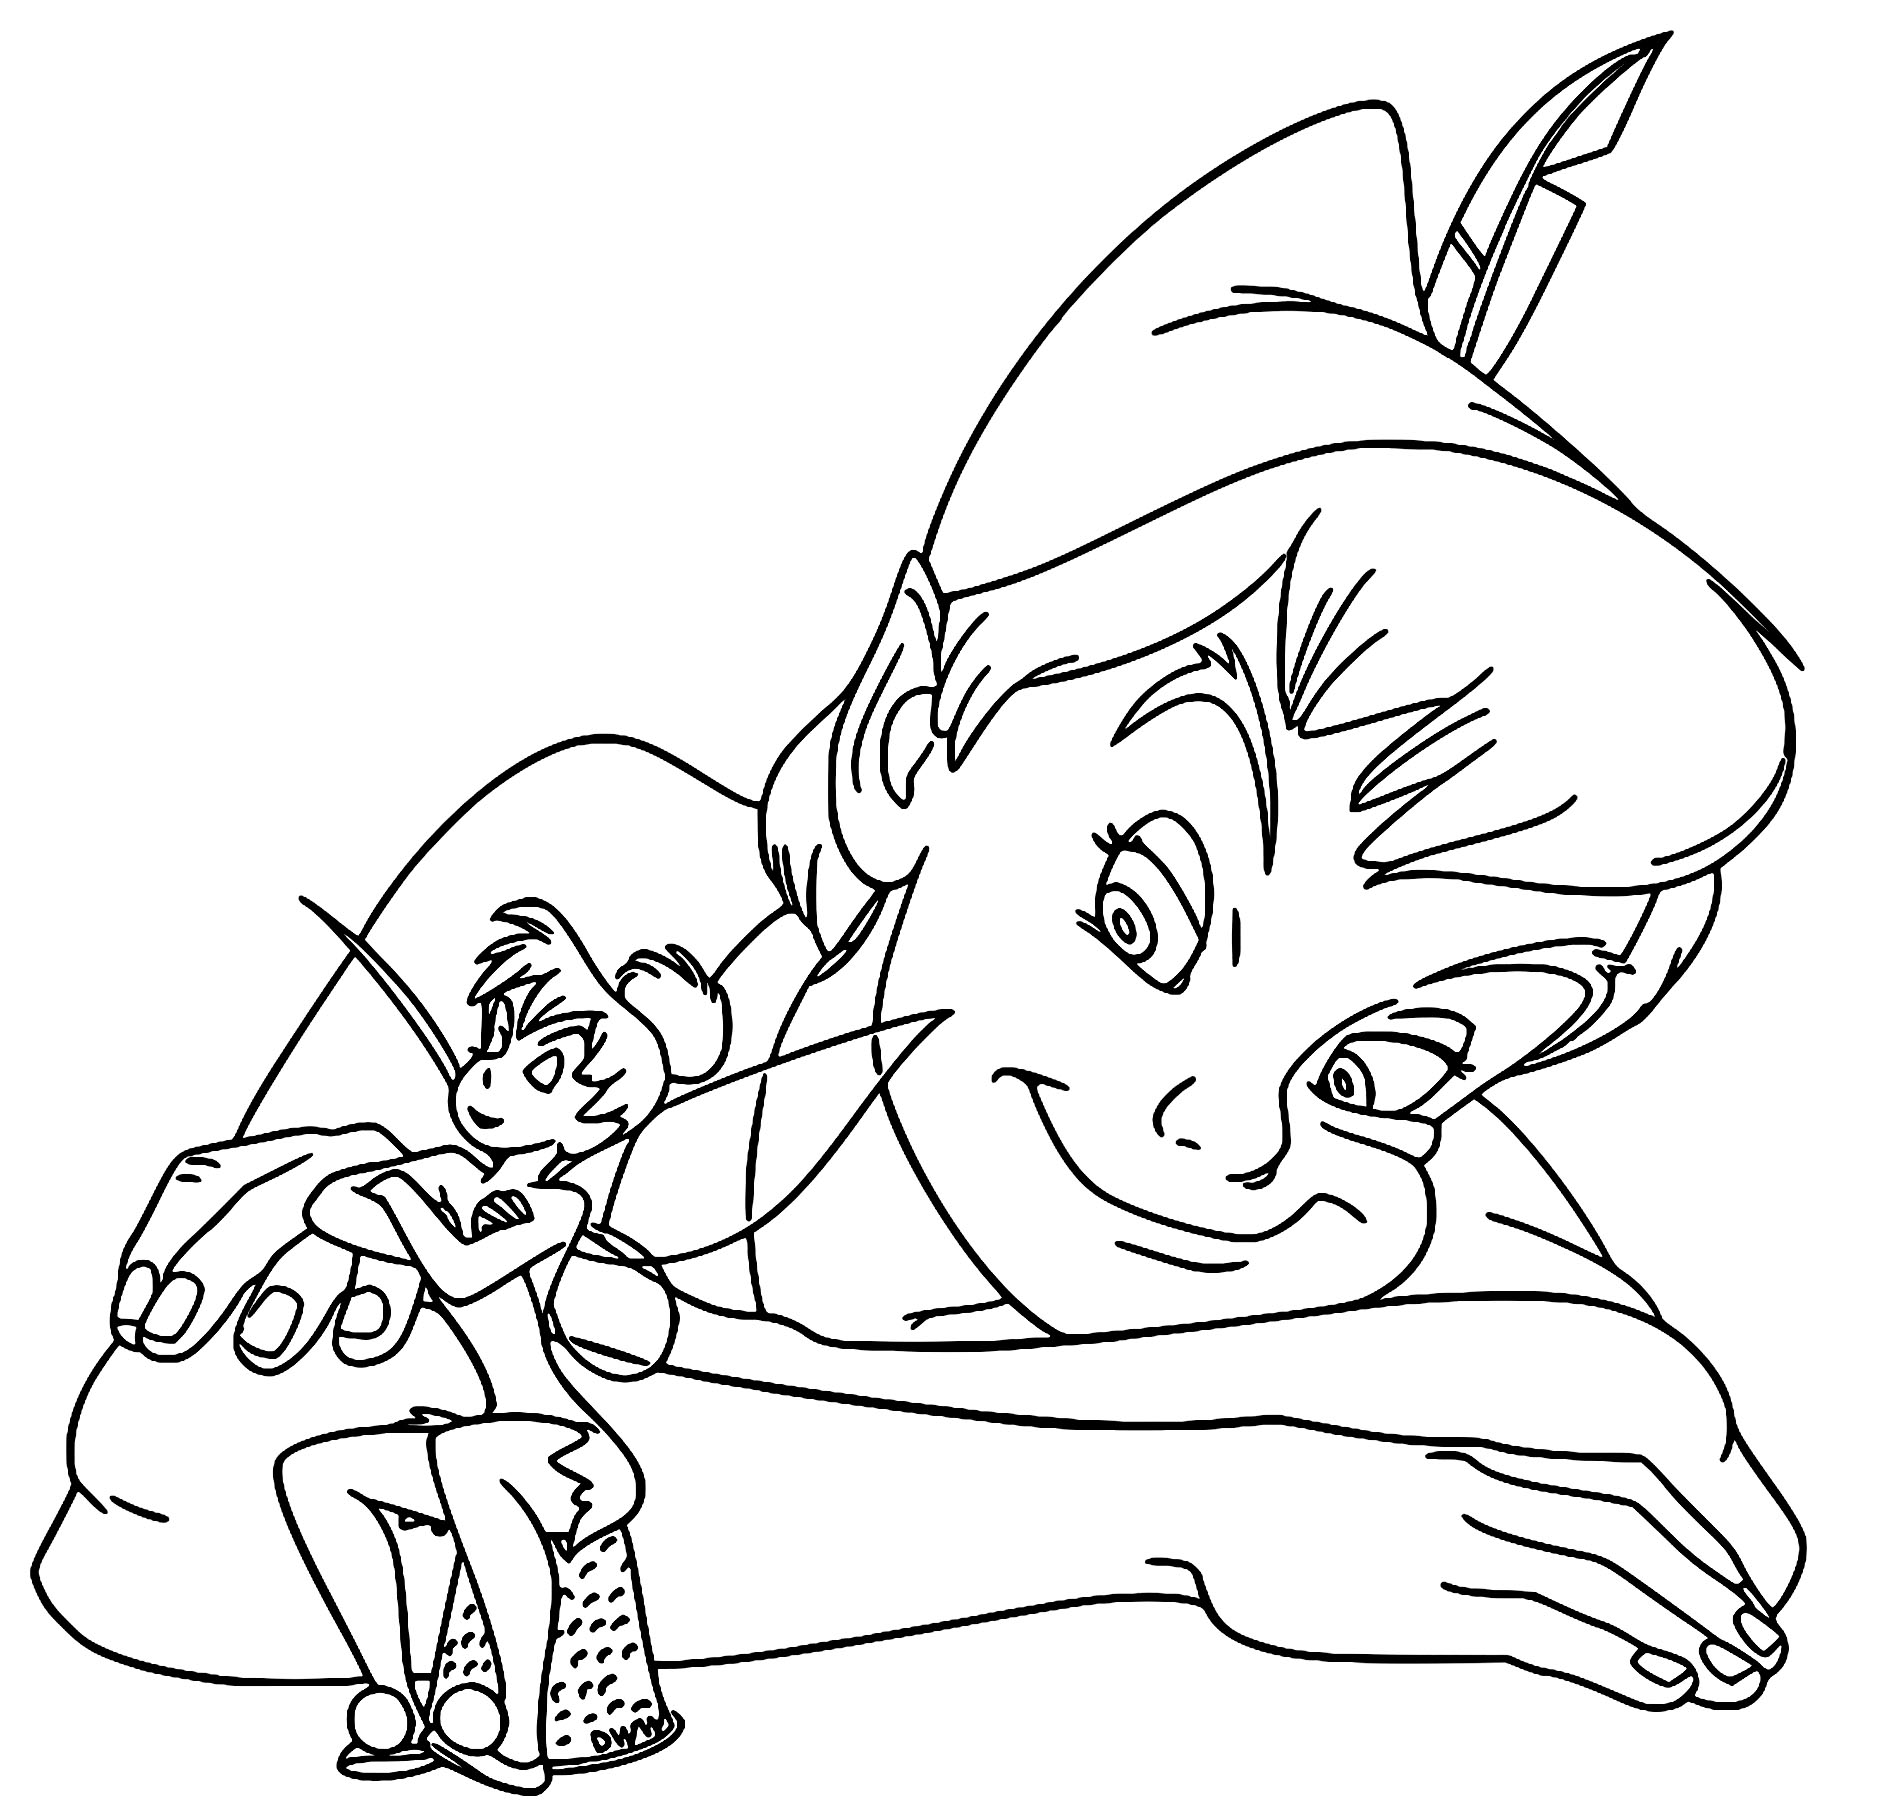 peter pan tinker bell coloring pages